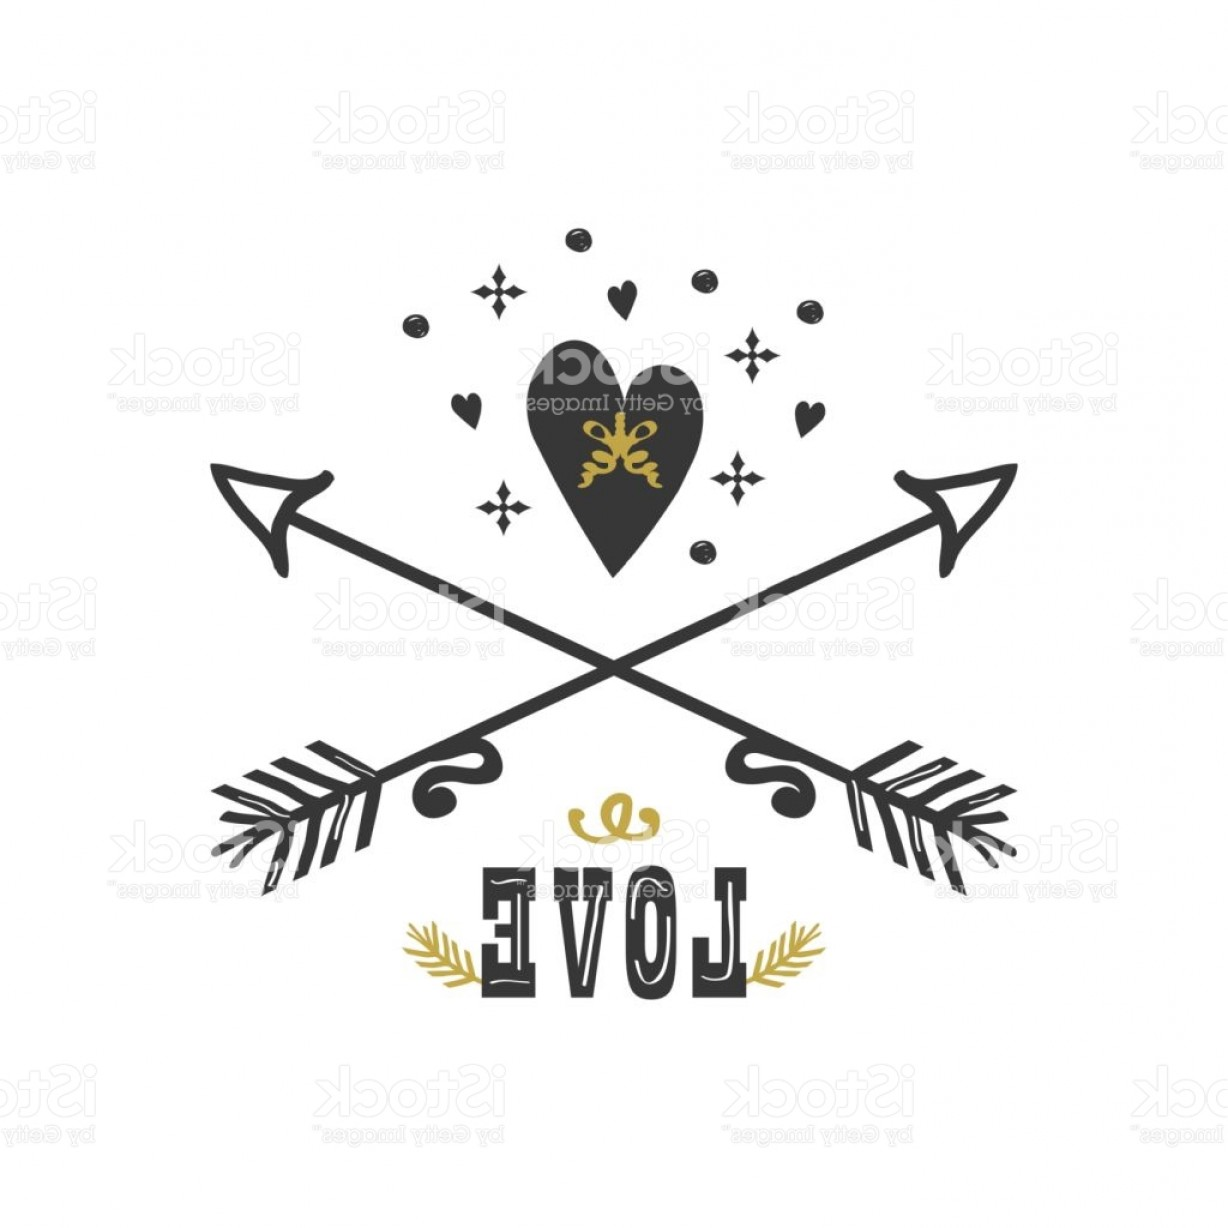 Love With Arrows Vector: Black And Golden Hand Drawn Love Heart And Crossed Arrows Icons On White Background Gm